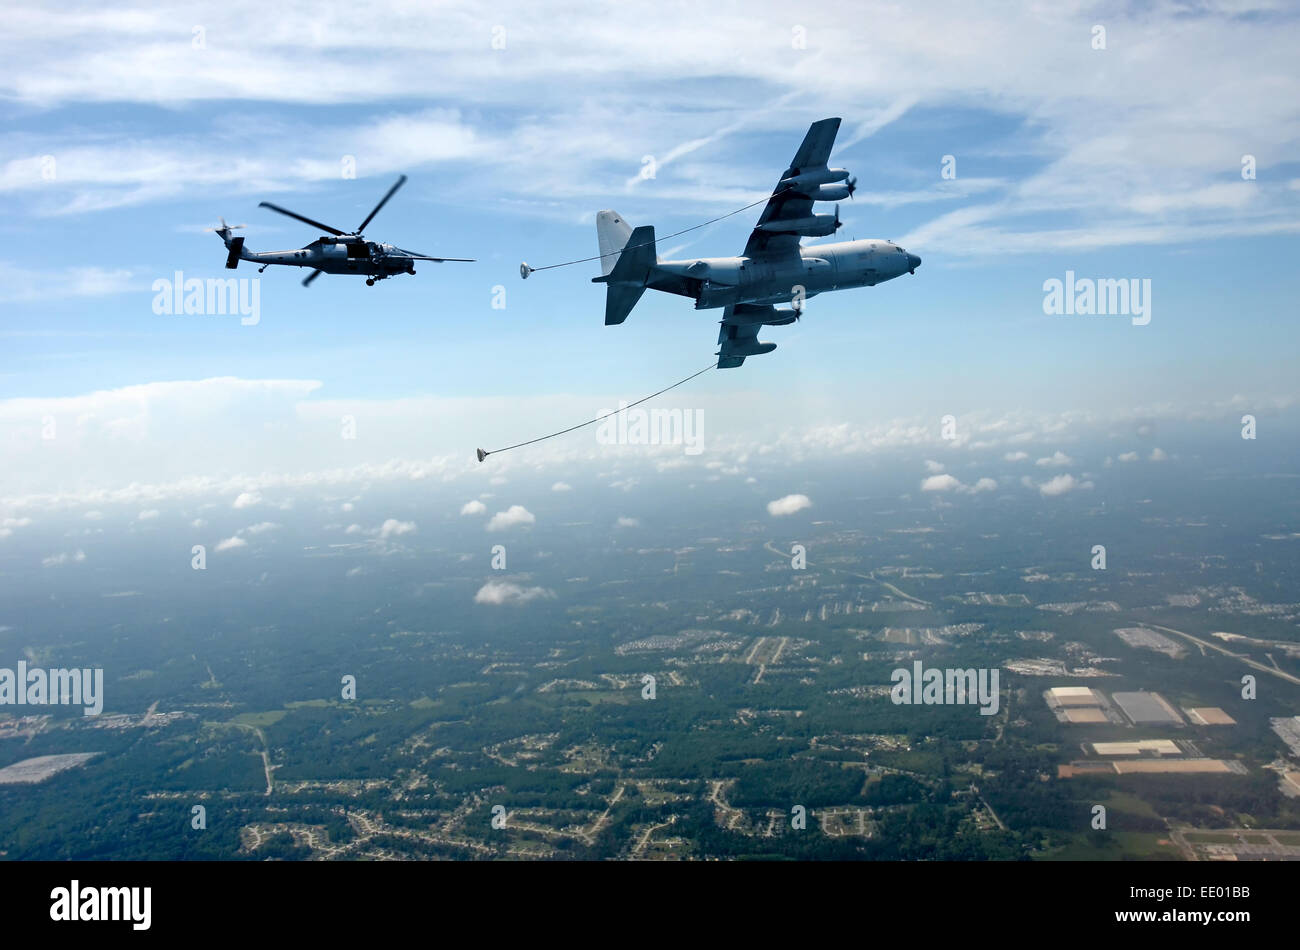 High altitude helicopter refueling operation from a C-130 Hercules tanker - Stock Image